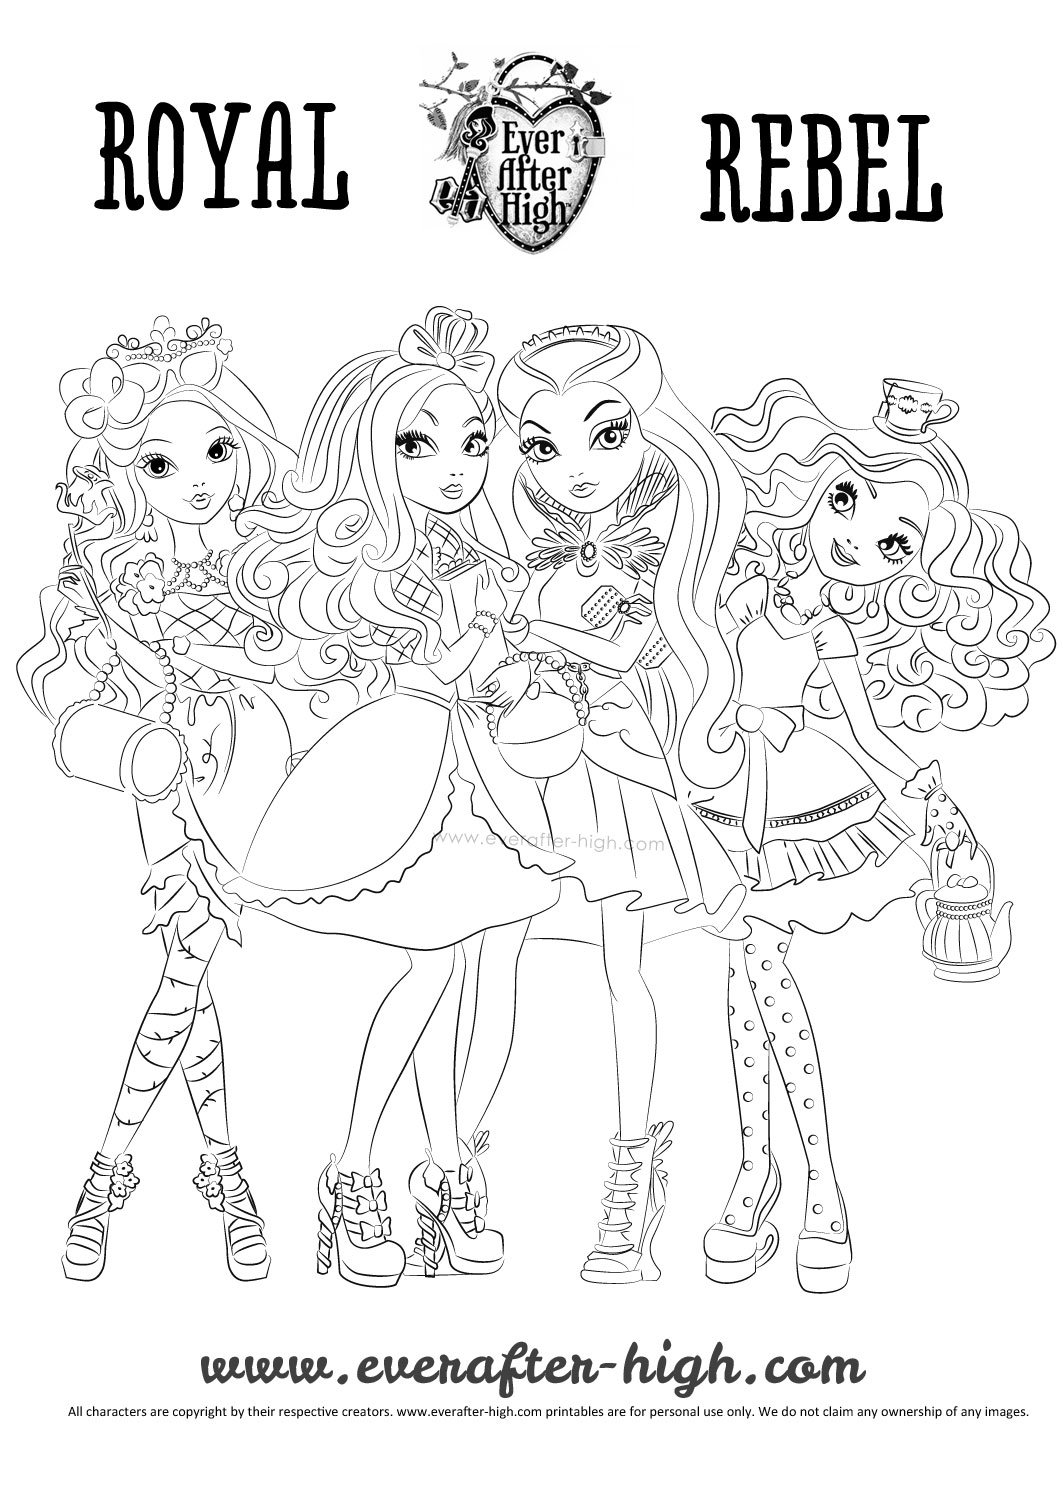 ever after high coloring pages ever after high raven madeline briar and apple coloring high pages after ever coloring